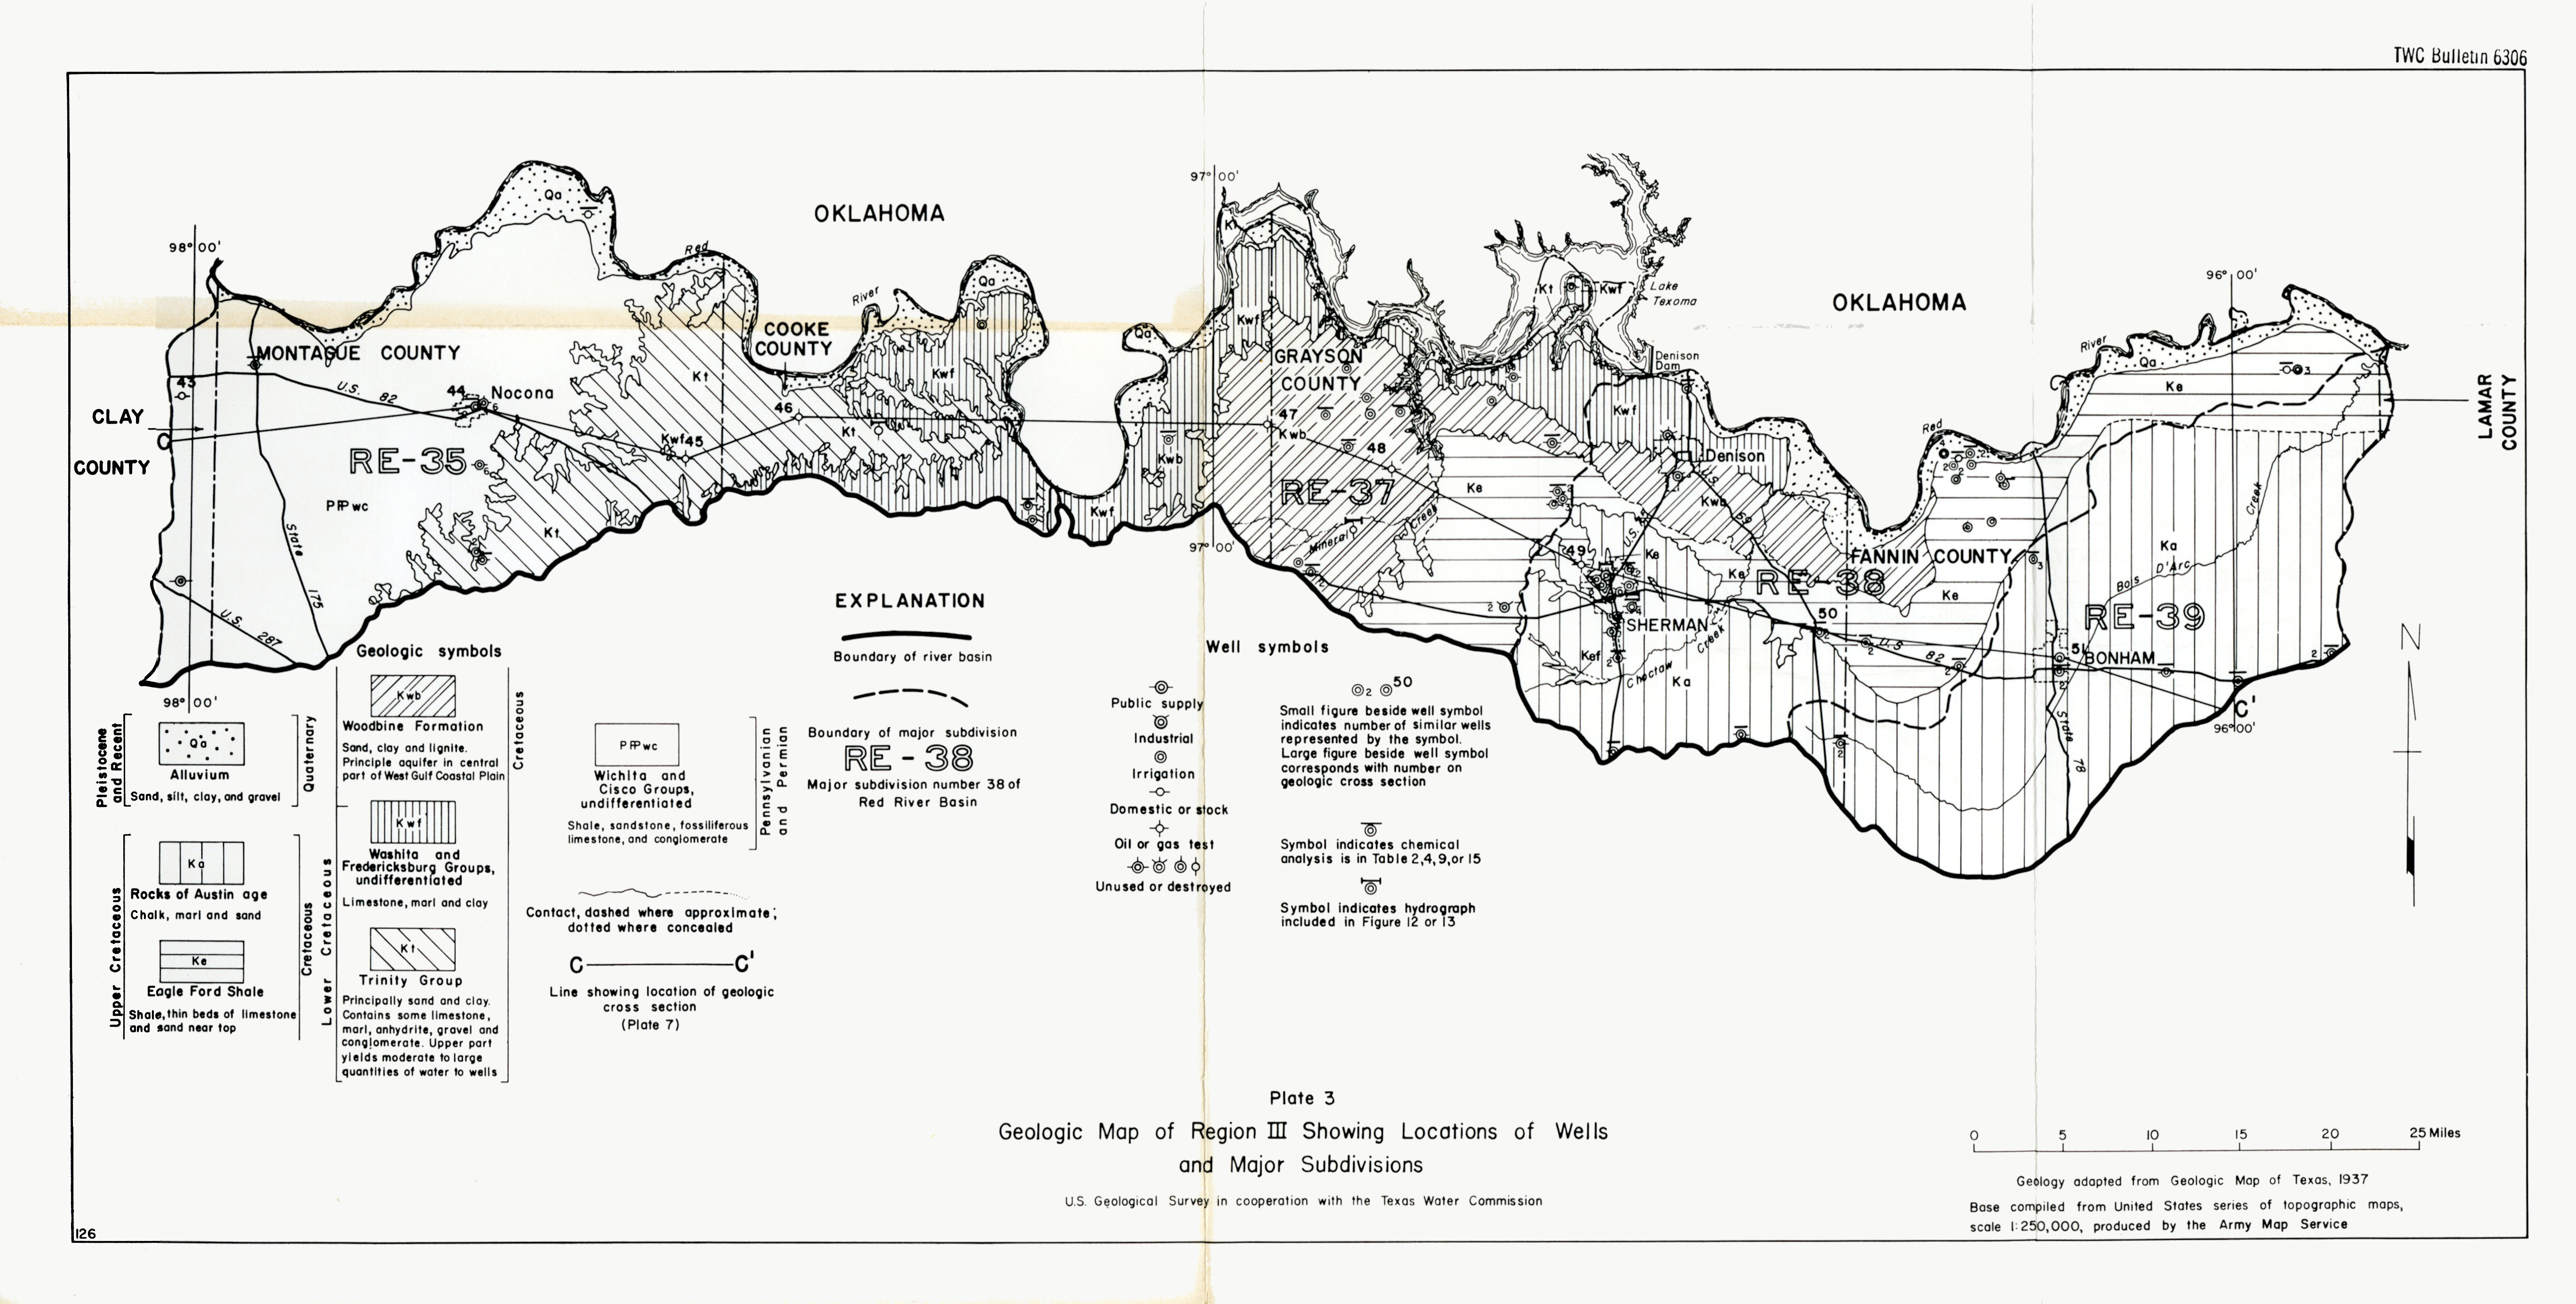 TWC Bulletin 6306 Geologic Map of Region III Showing Locations of Wells and Major Subdivisions